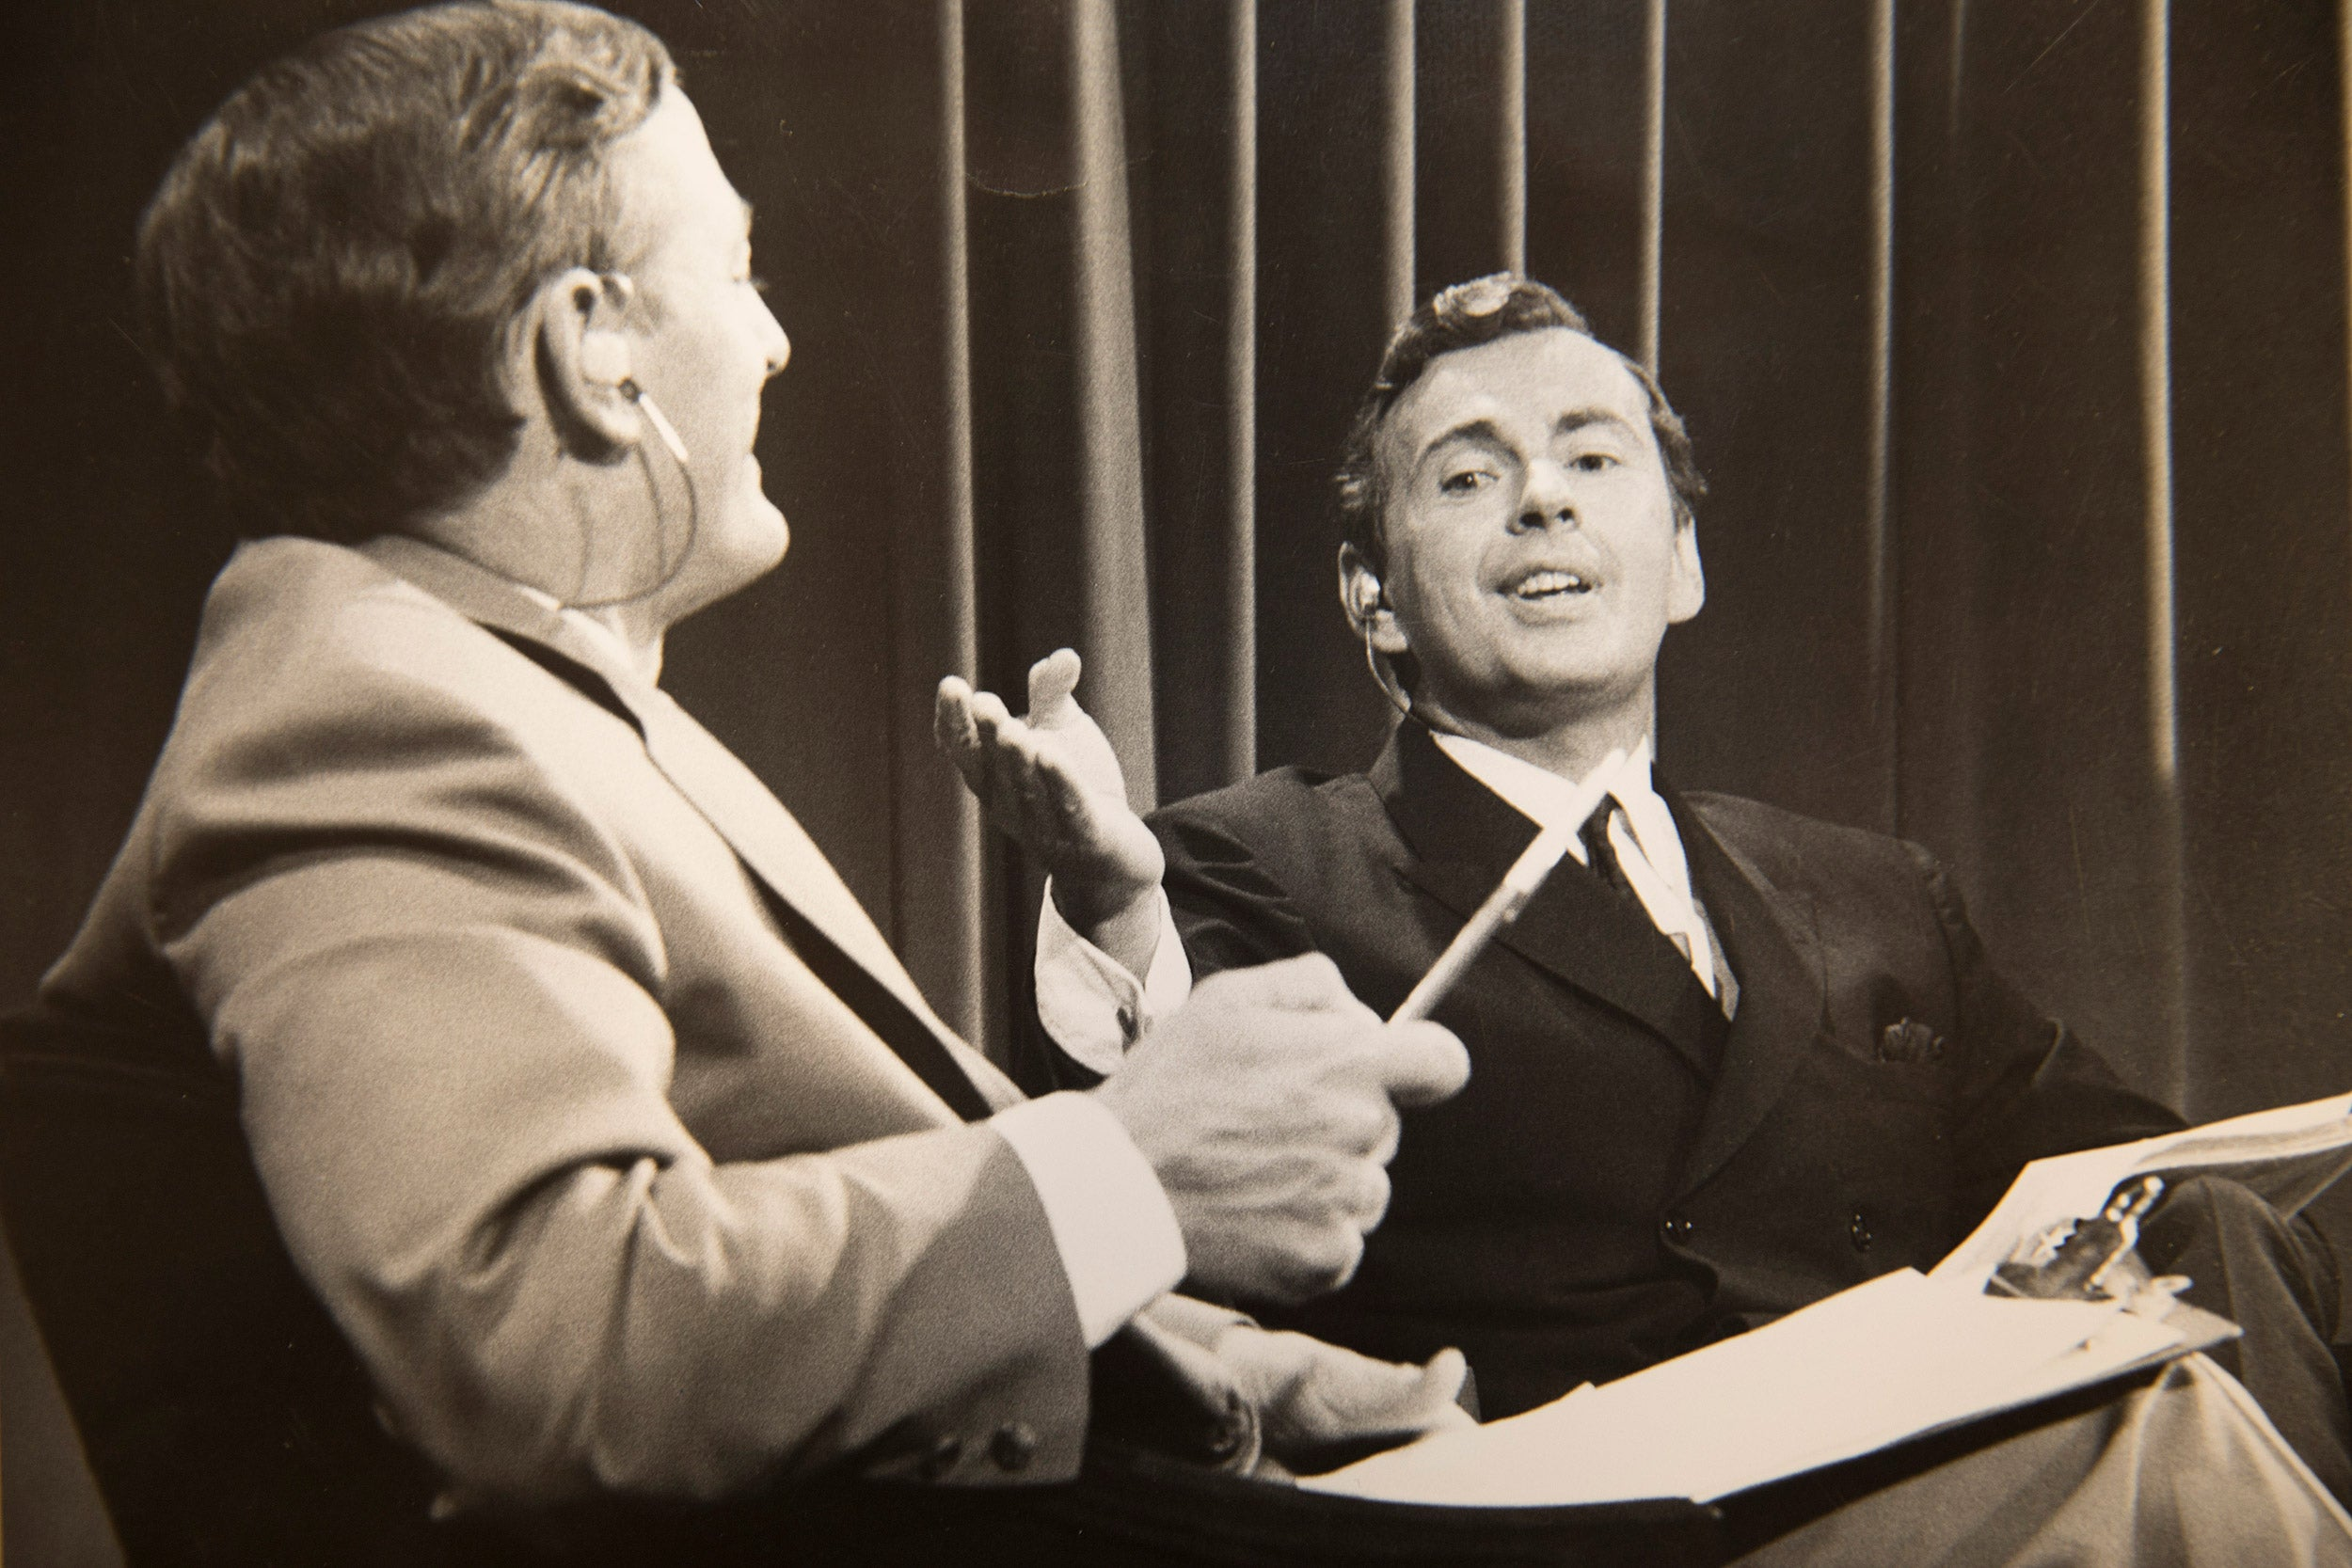 William F. Buckley Jr. and Gore Vidal debate.